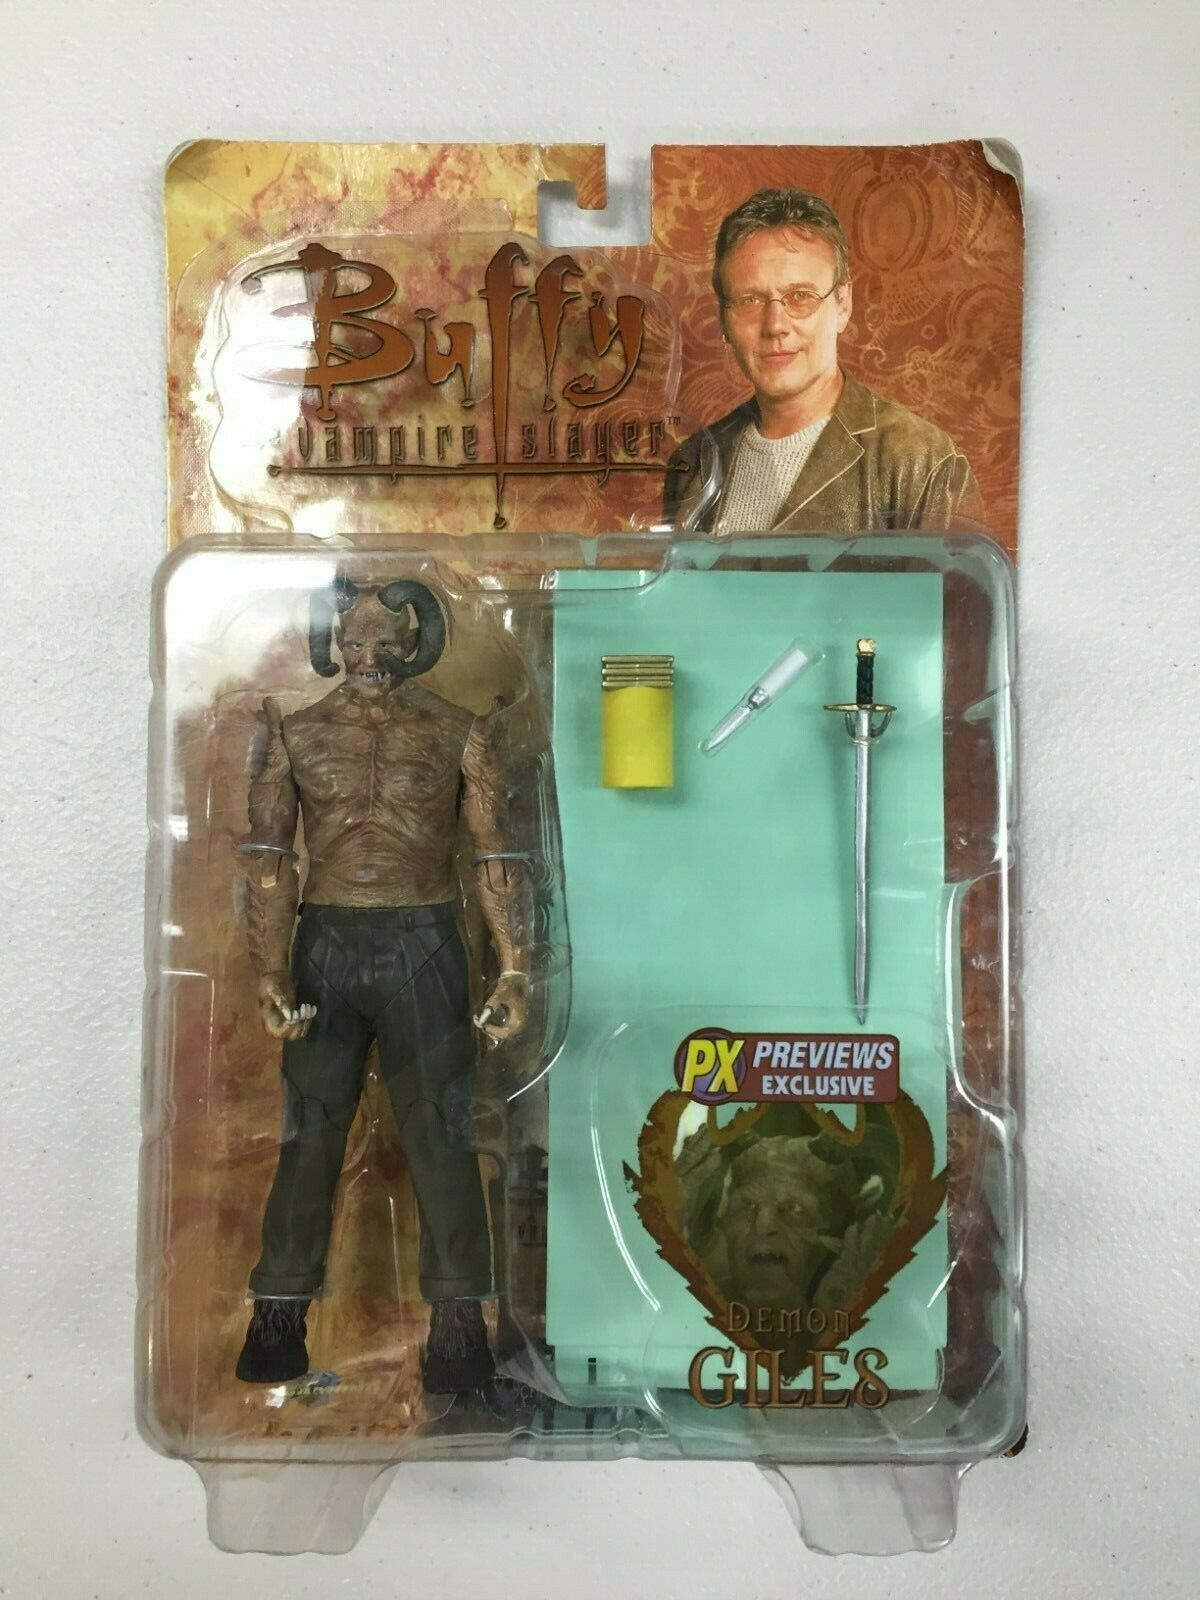 Demon Giles - Buffy the Vampire  Slayer 2006 - Diamond Select - Sealed on autod  sconto online